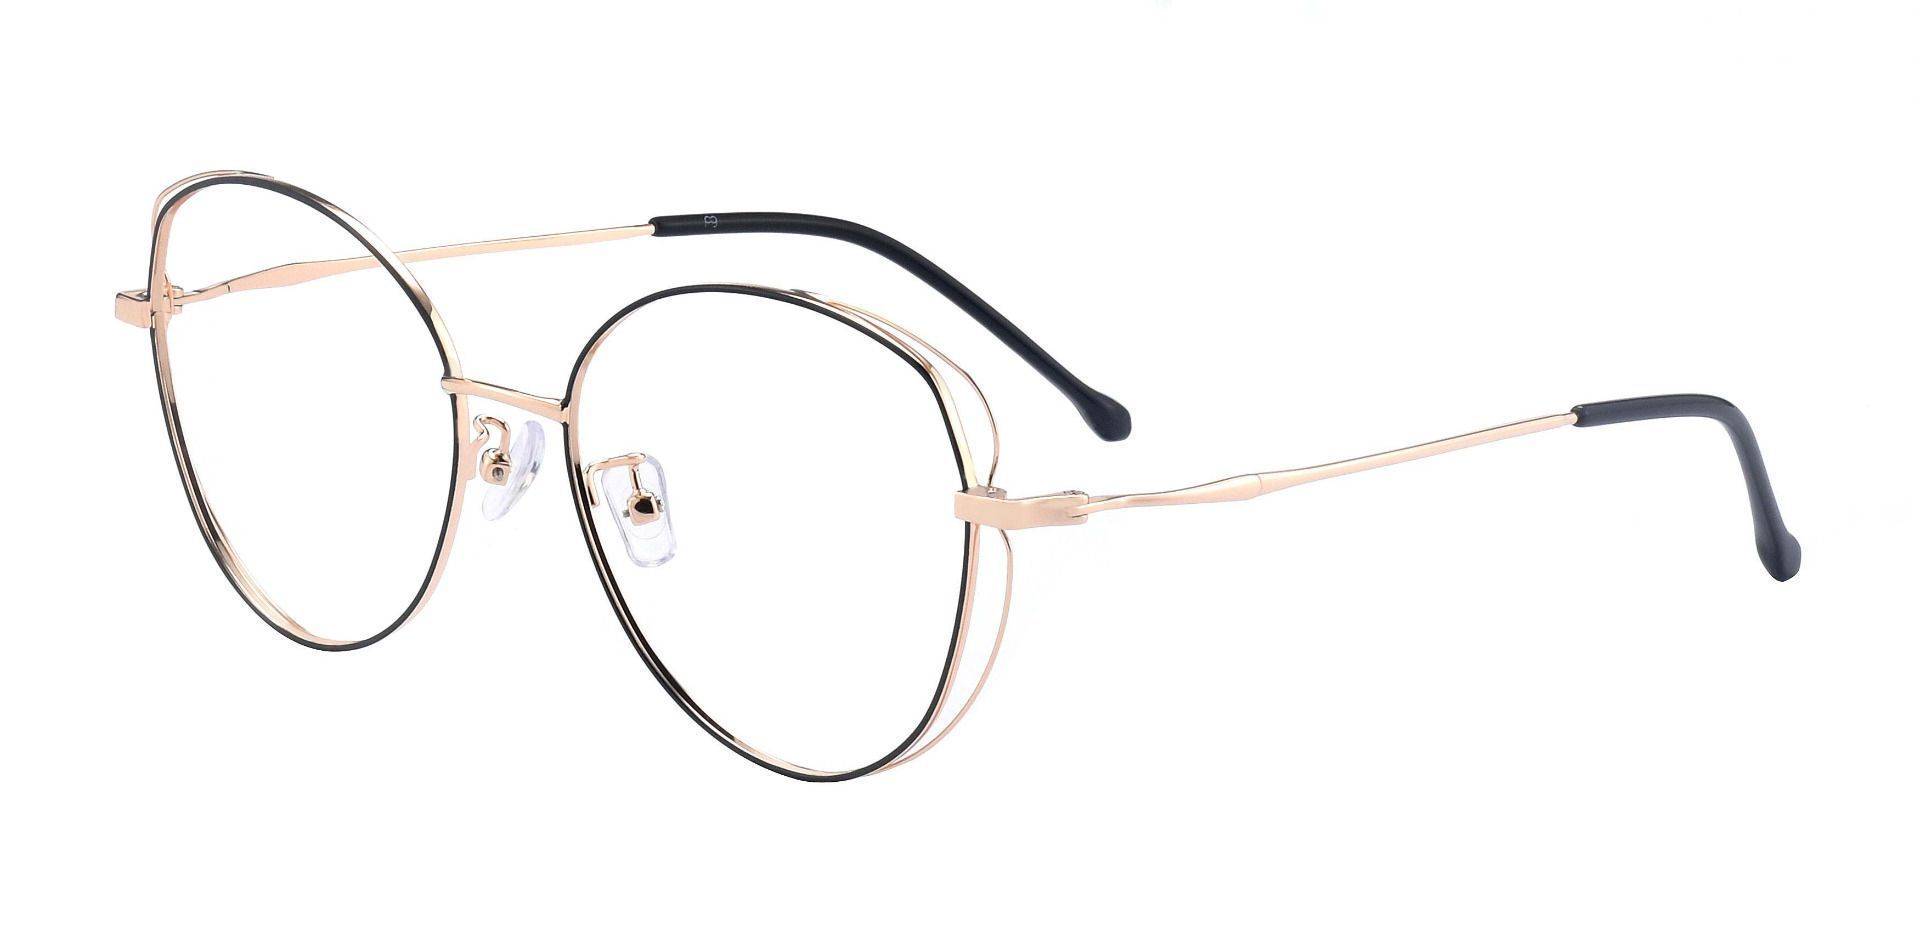 Mantle Geometric Prescription Glasses - Black /rose Gold